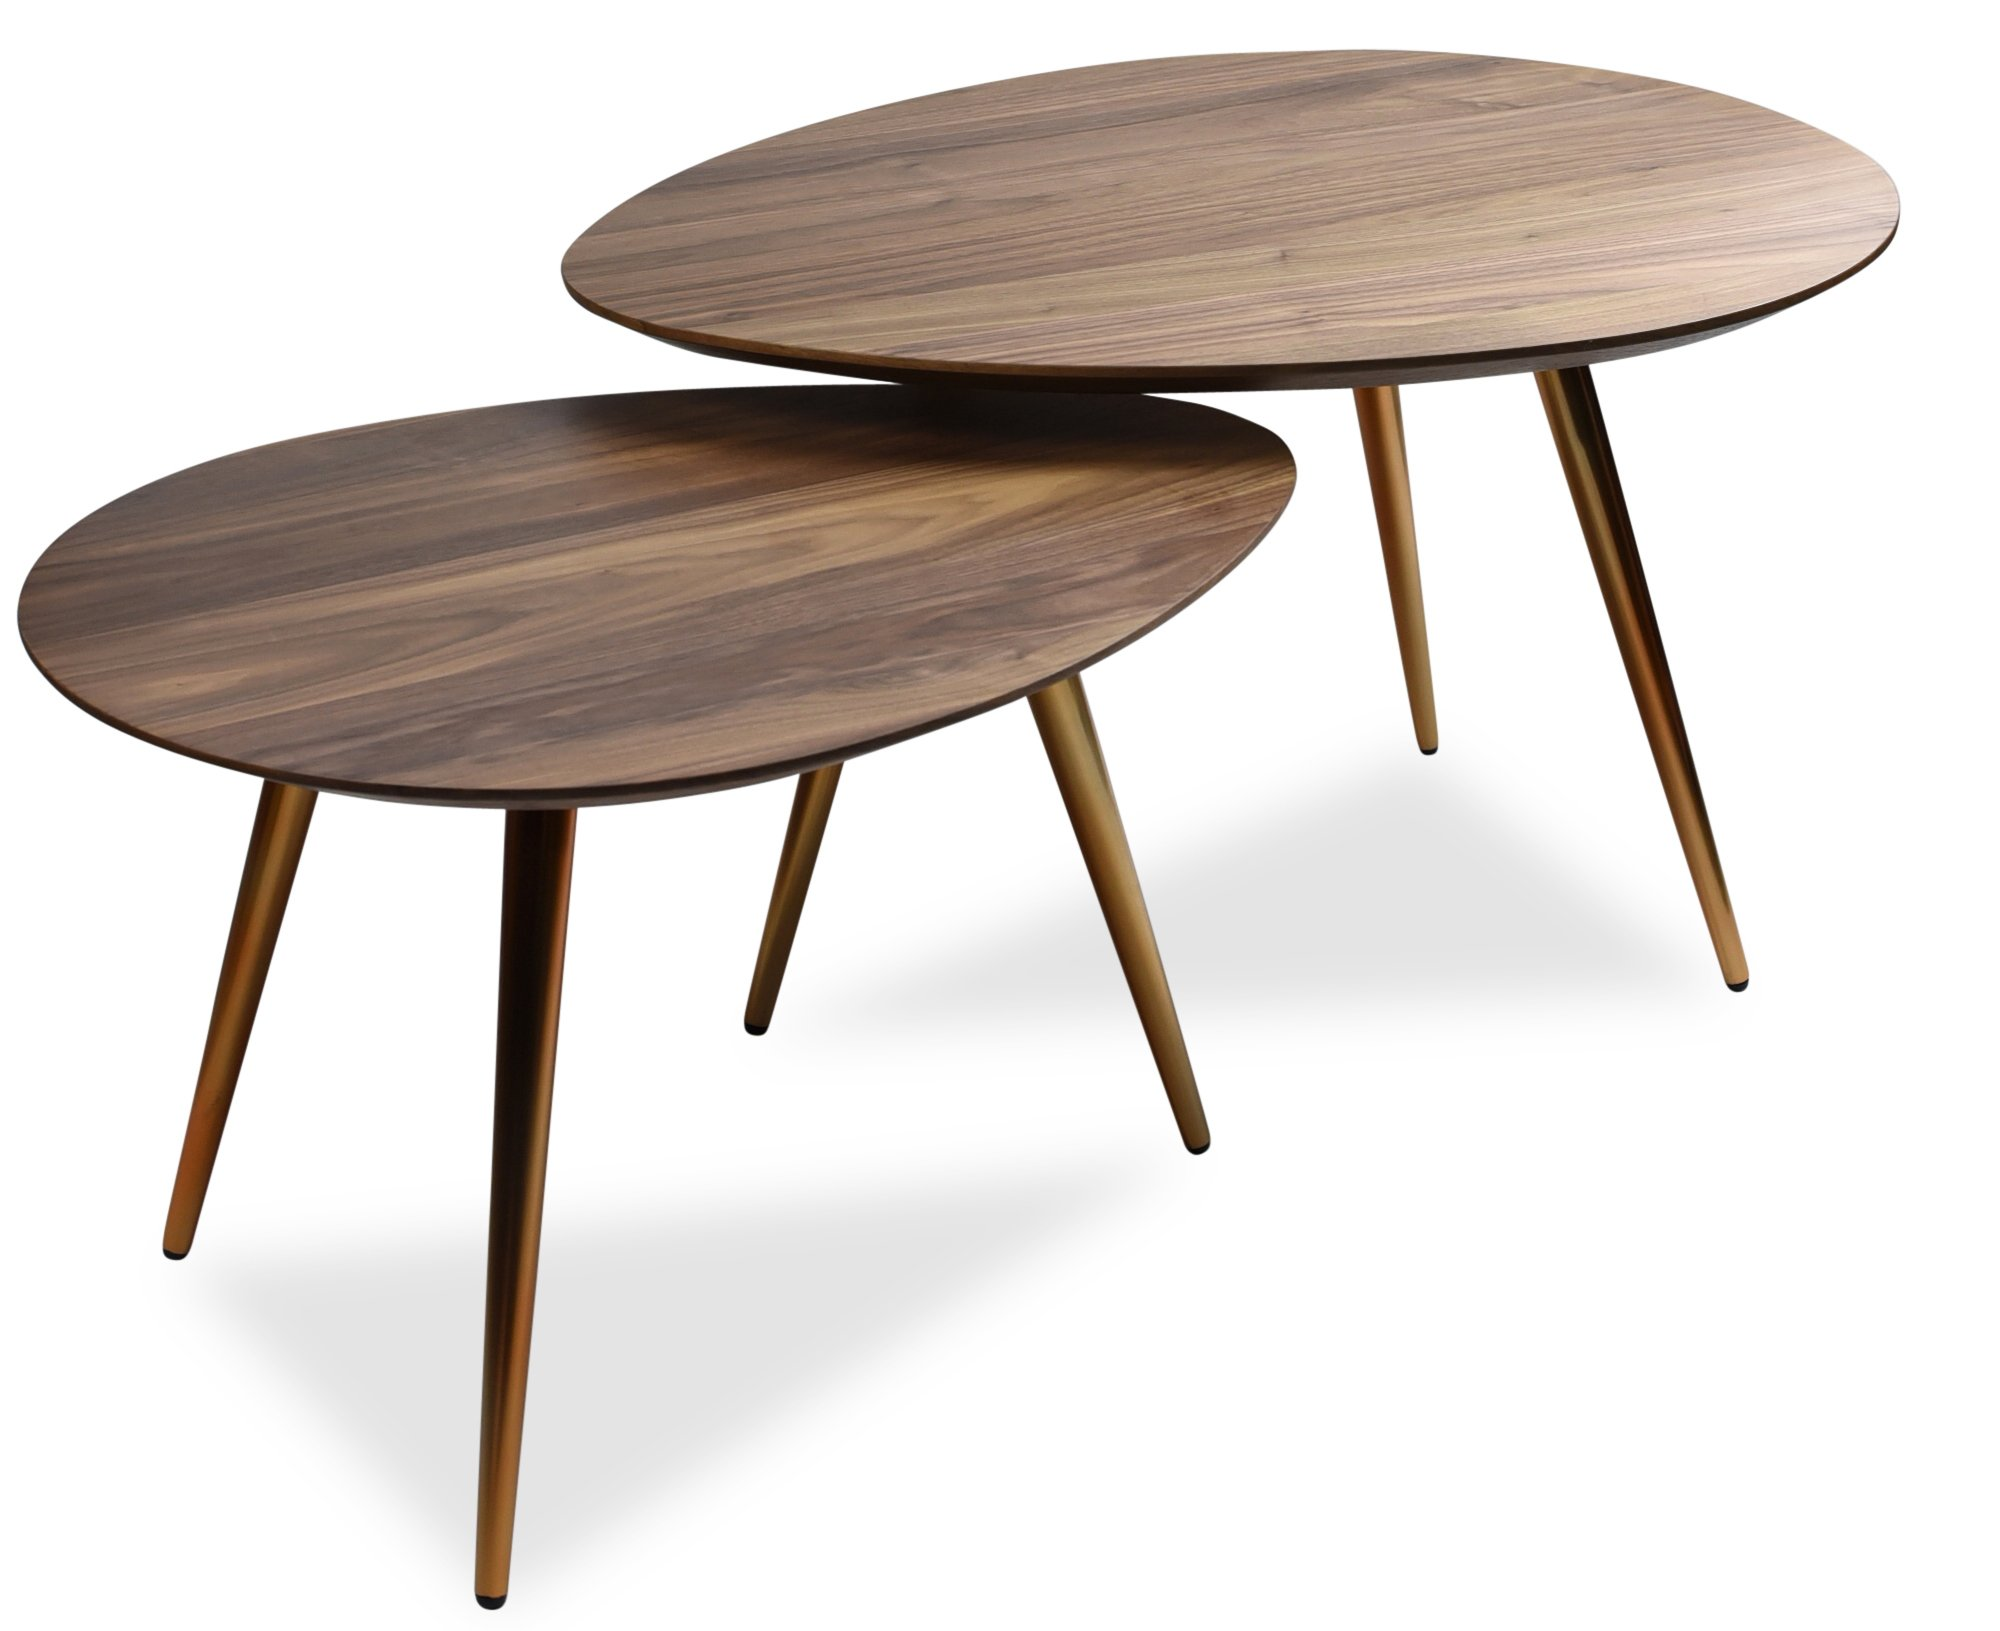 Mid Century Modern Coffee Table Set by Edloe Finch - Coffee Tables for Living Room - Contemporary & Retro Low Walnut Wood Midcentury Nesting Table - 2 Piece Set